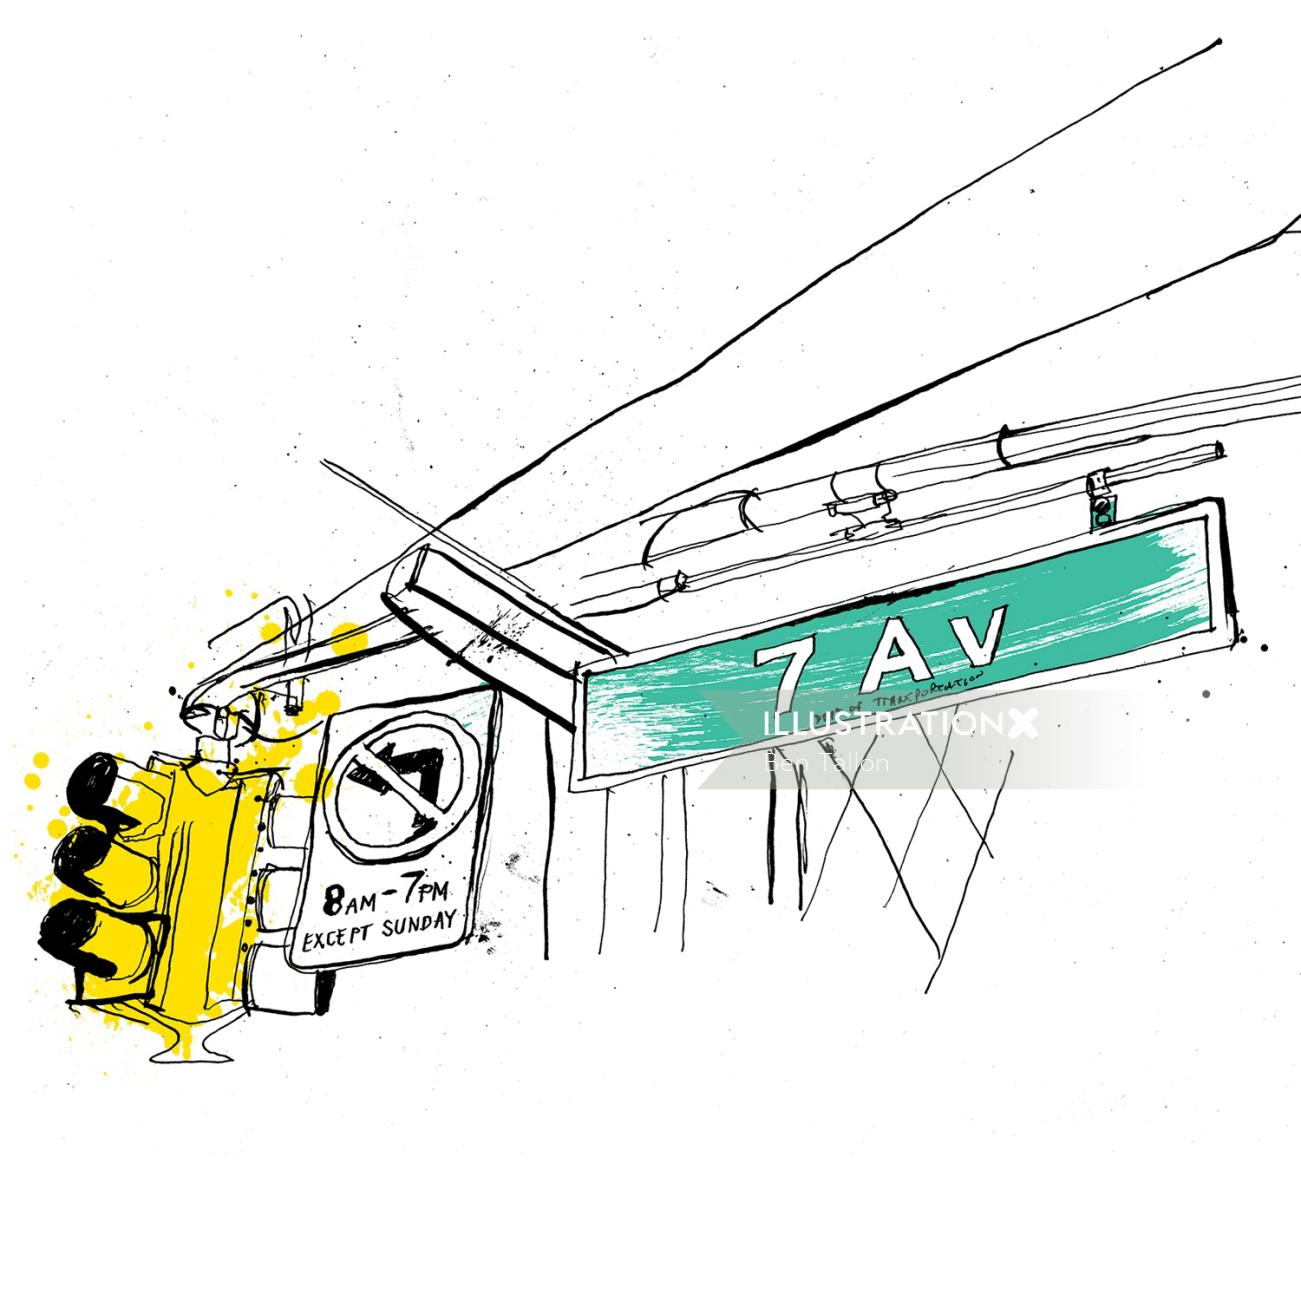 Transport drawing by Ben Tallon